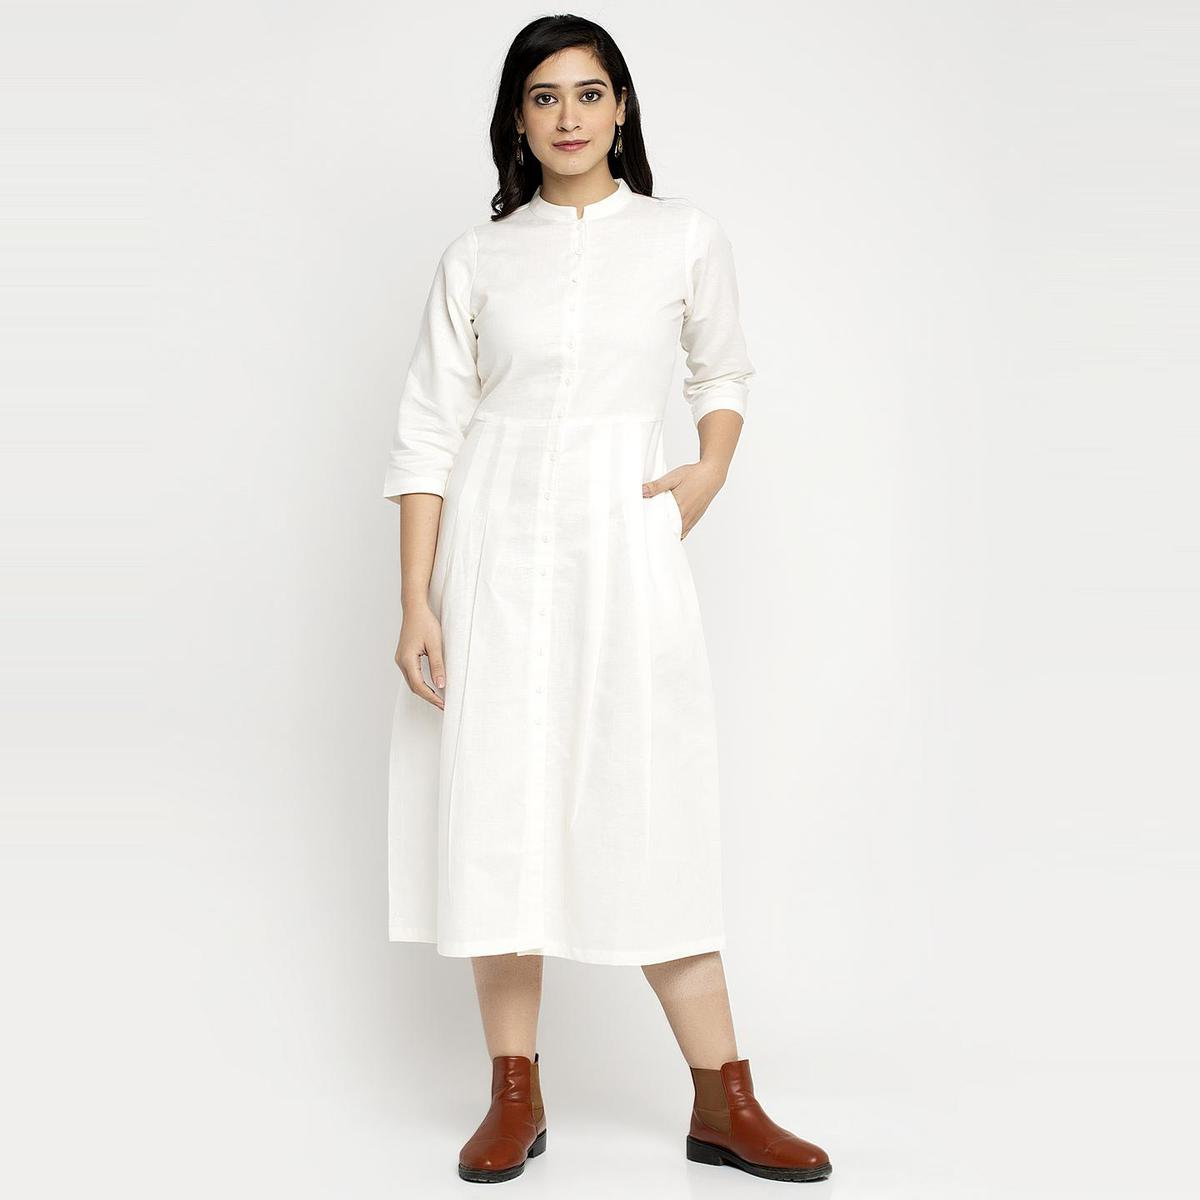 Ayaany - Beige Colored Linen Cotton Pleated Dress With Pockets